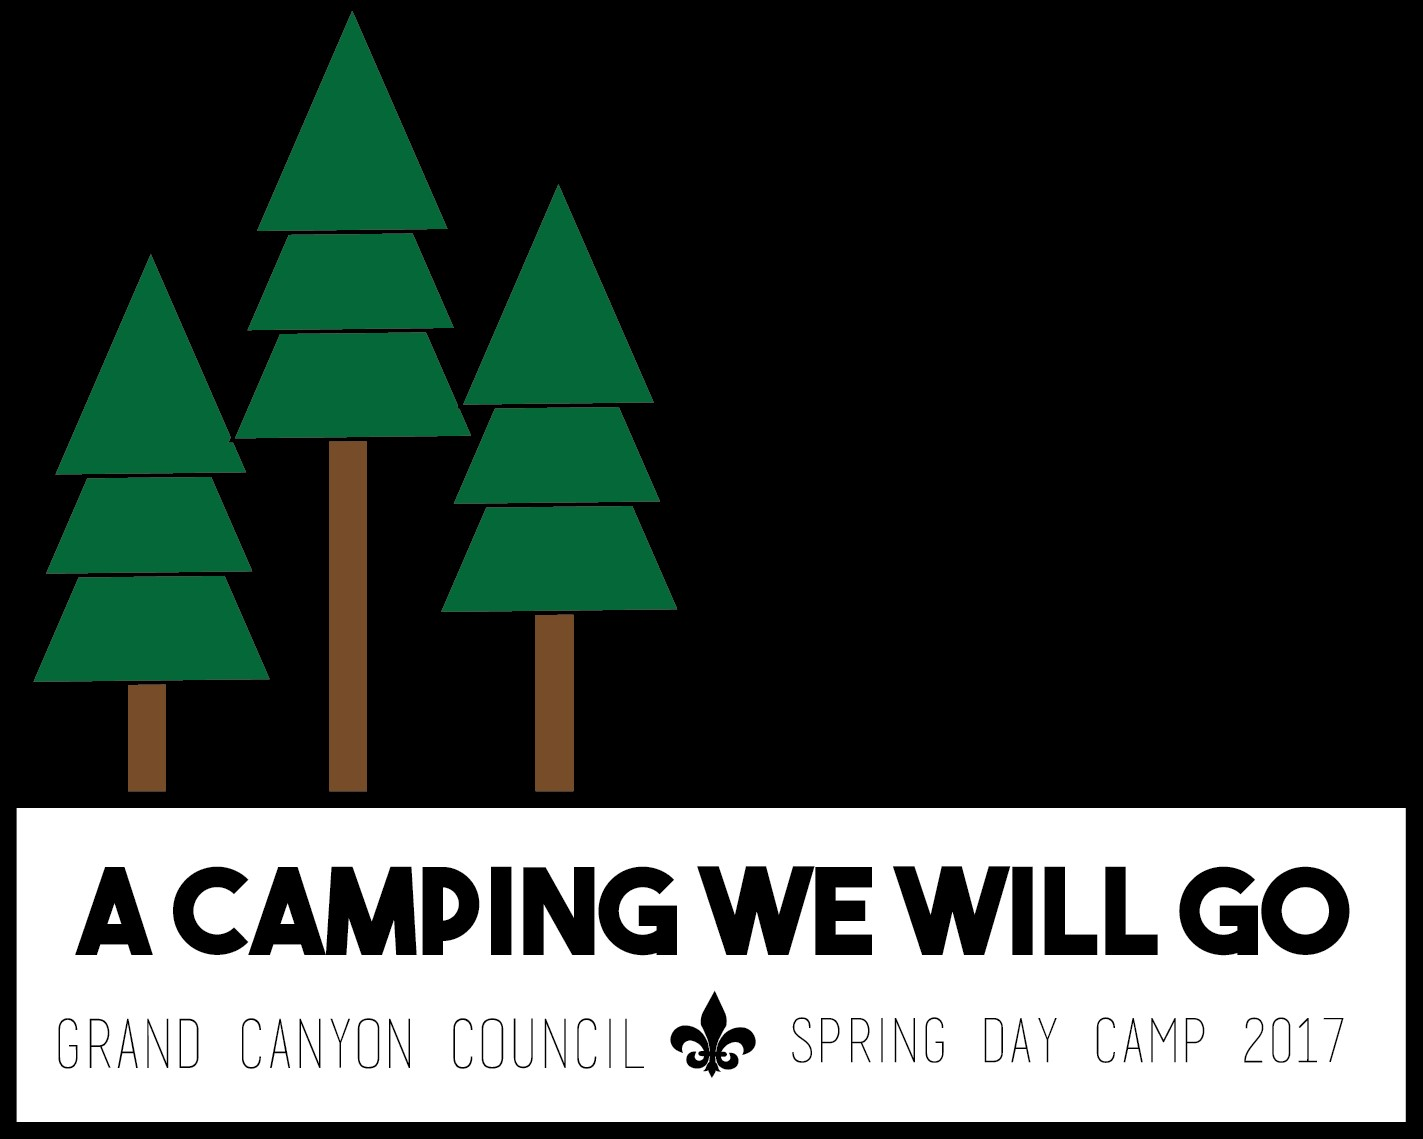 Grand Canyon Council 2017 Spring Day Camp